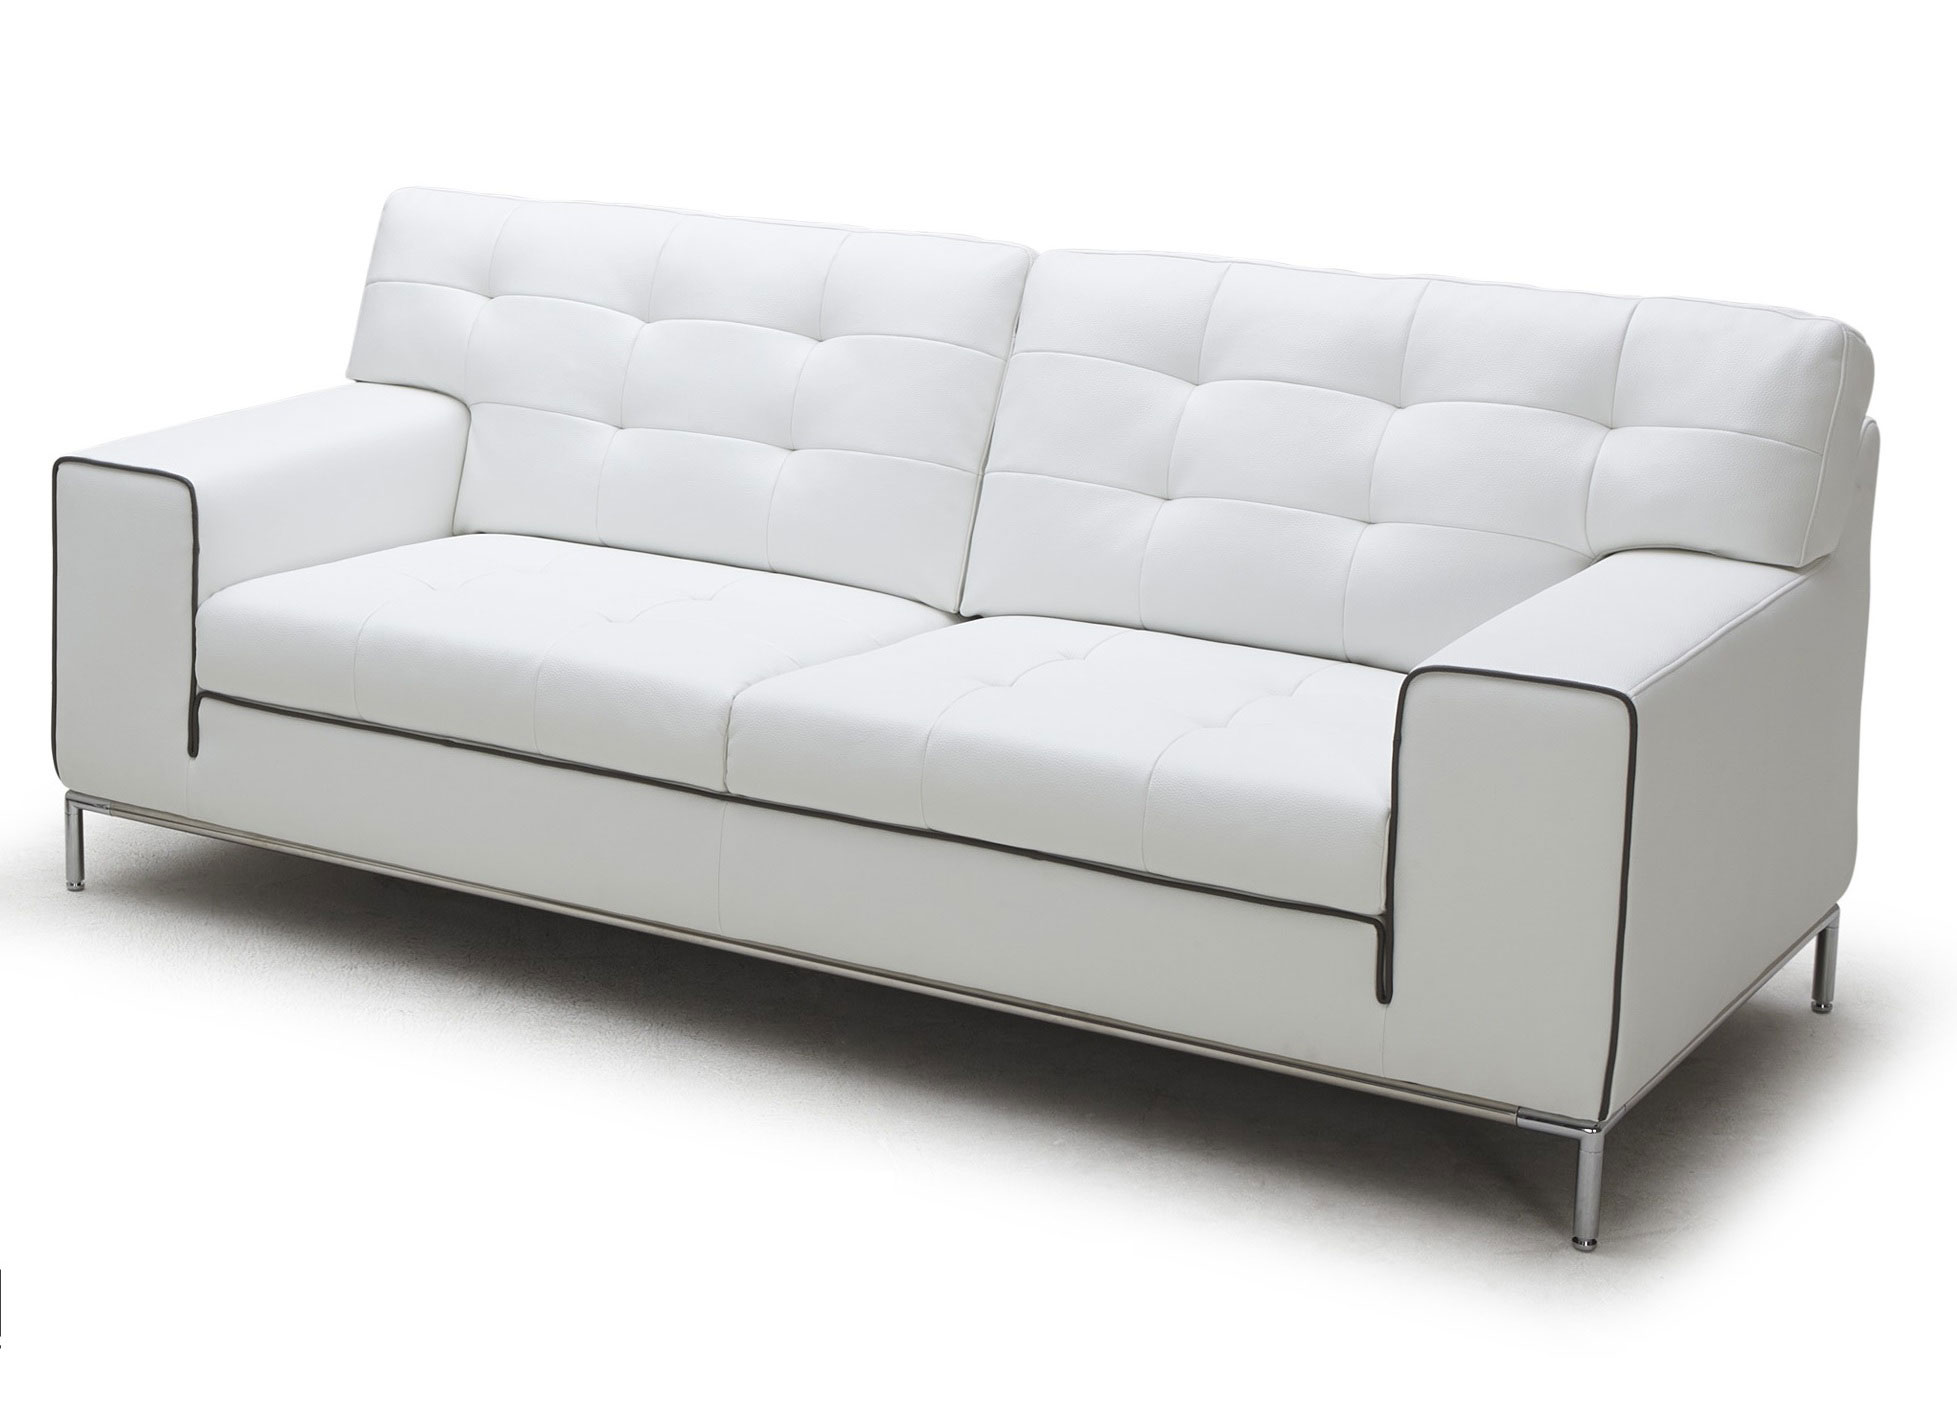 Cube Sofa In White Leather Not Just Brown